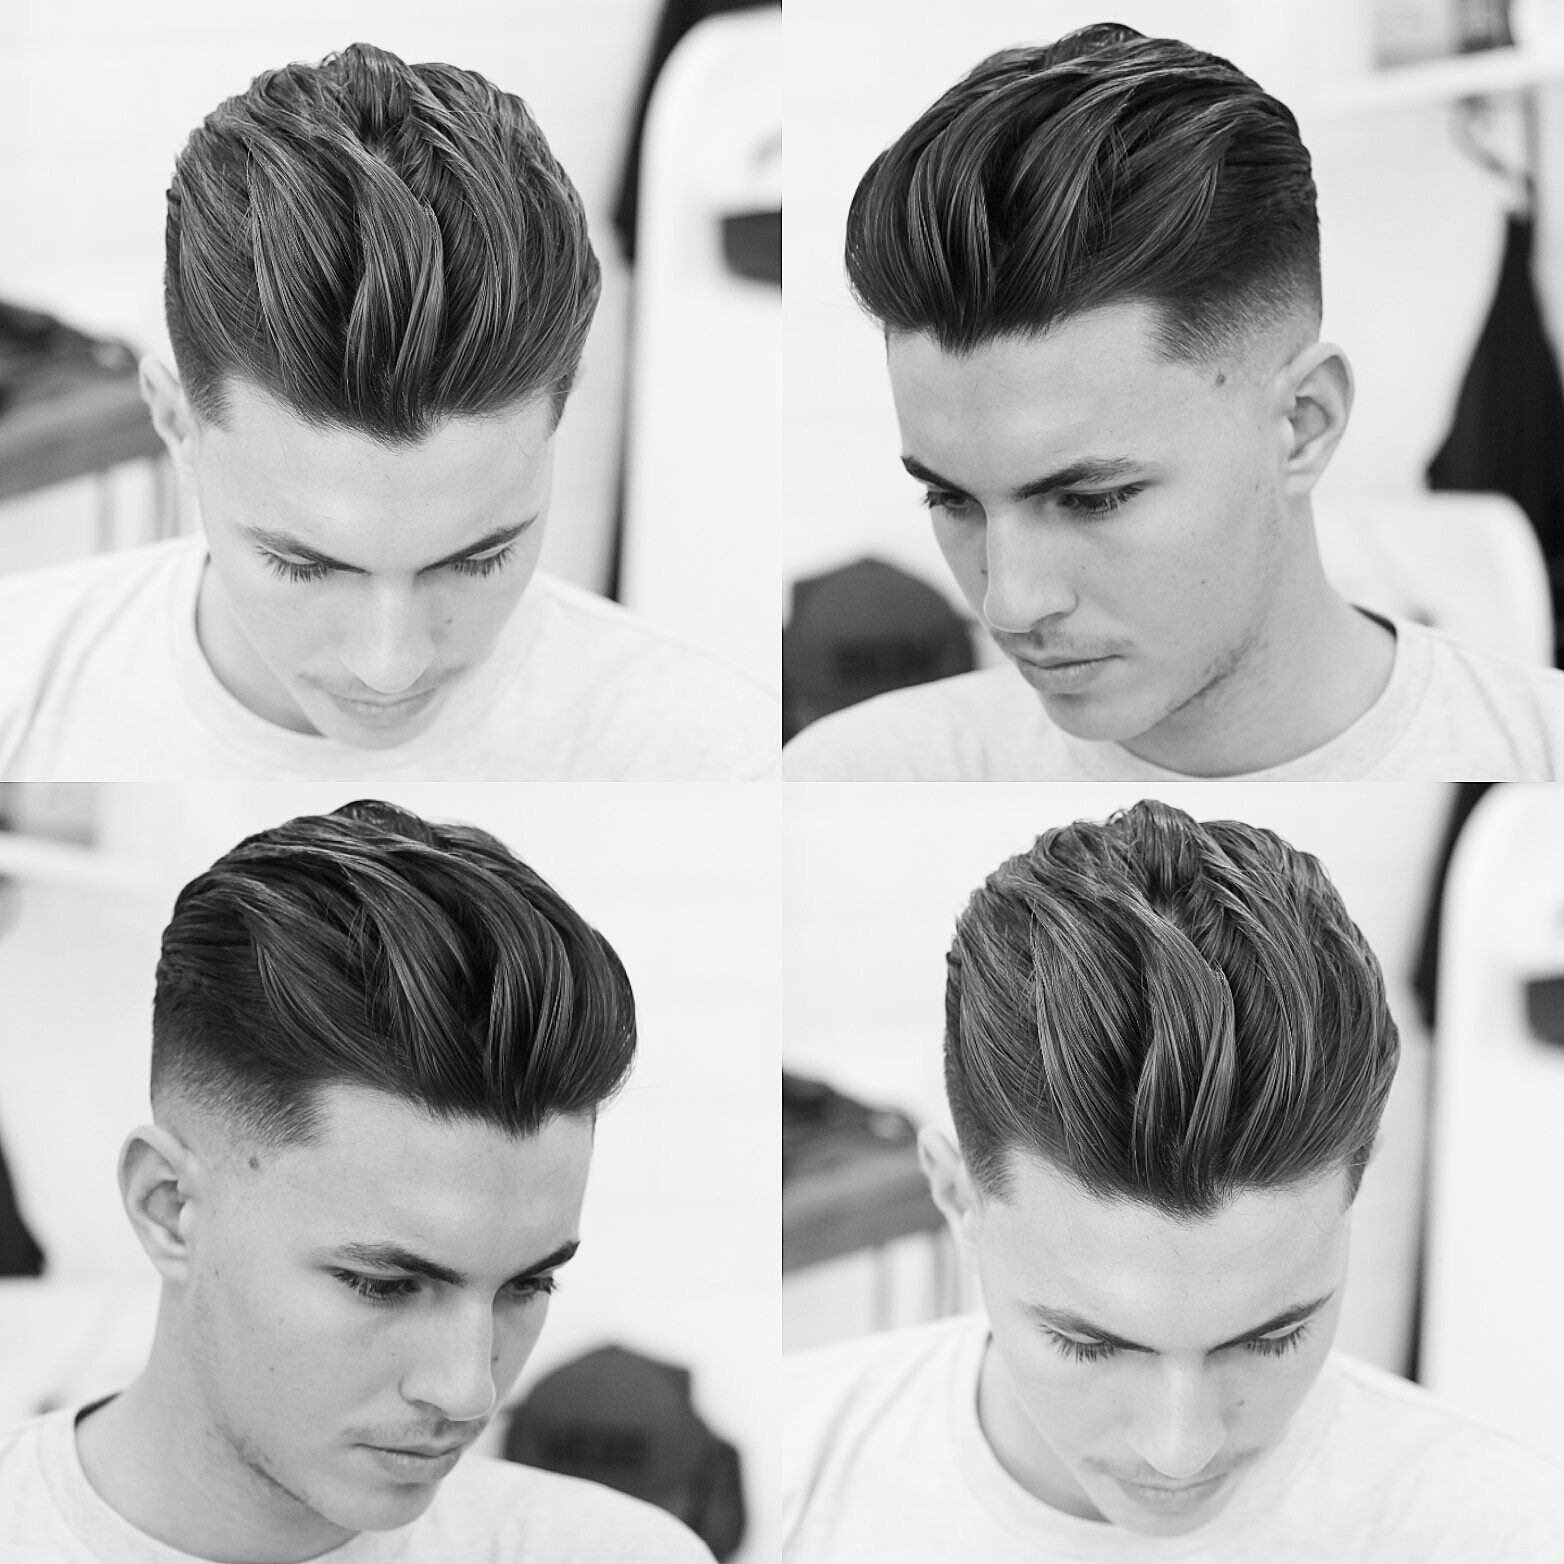 Pinterest: @hnnhBY  Long textured hair, Mid fade haircut, Boys